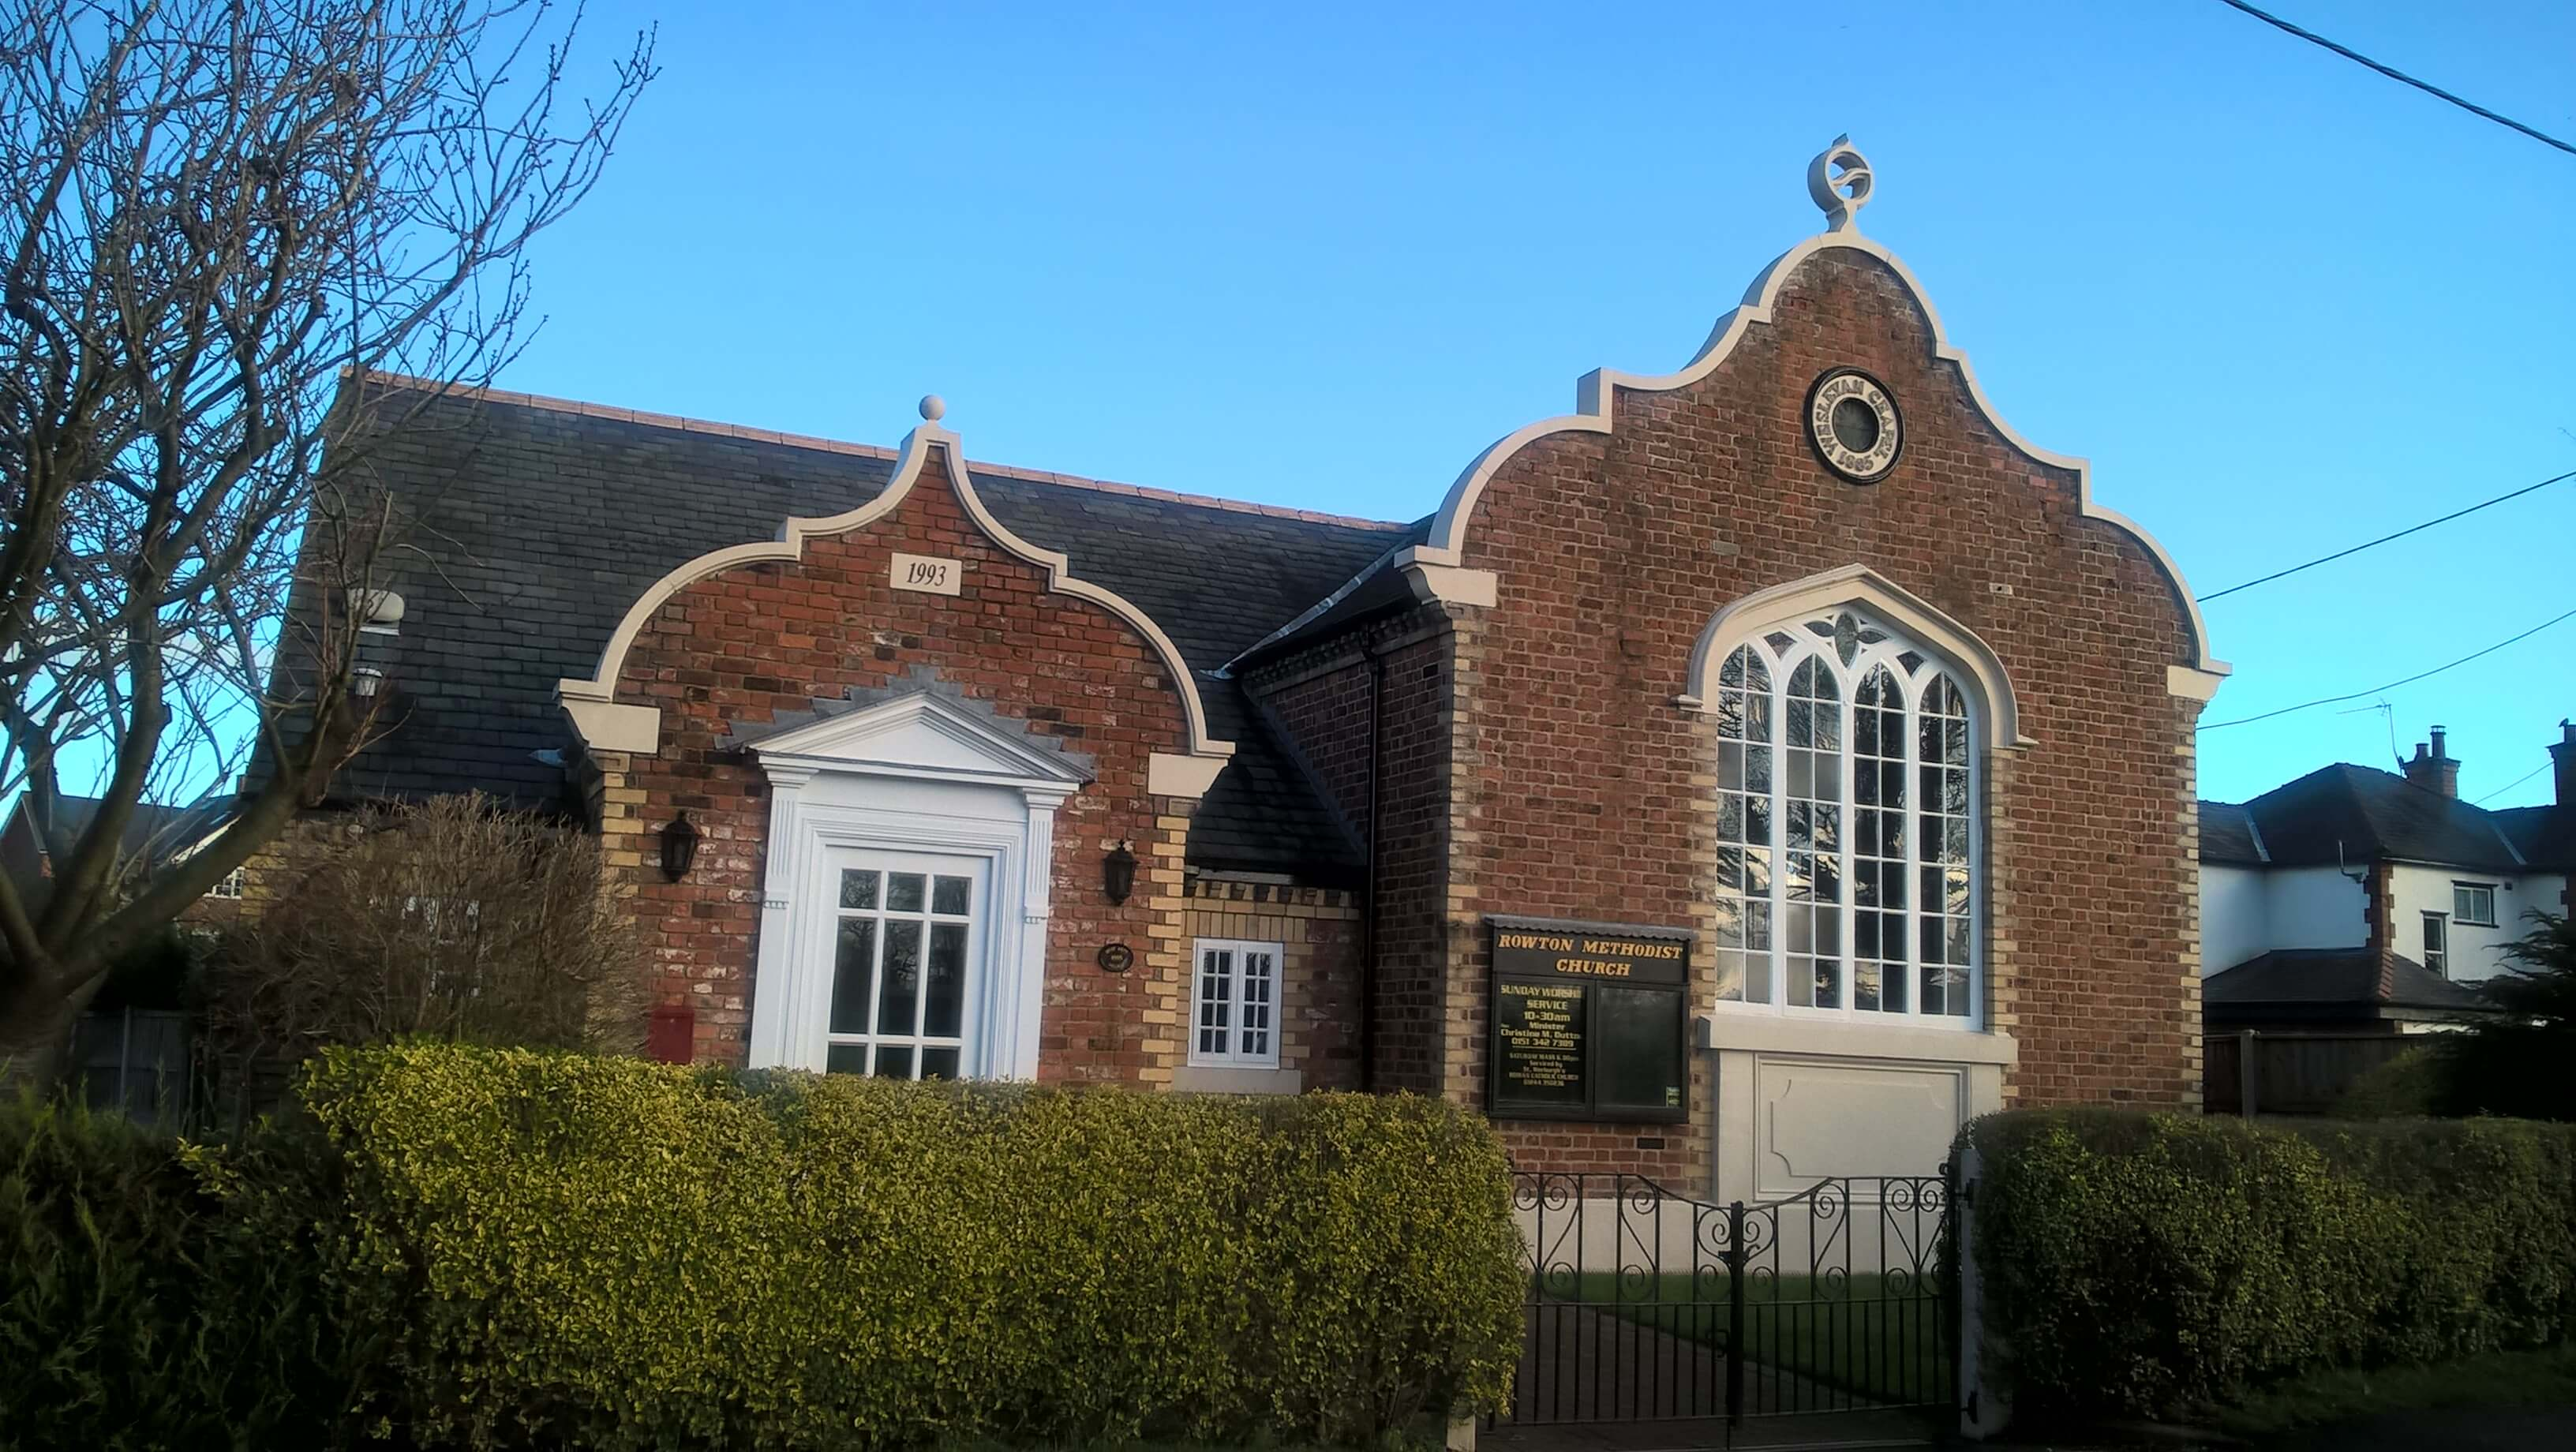 Image of a Church in Rowton